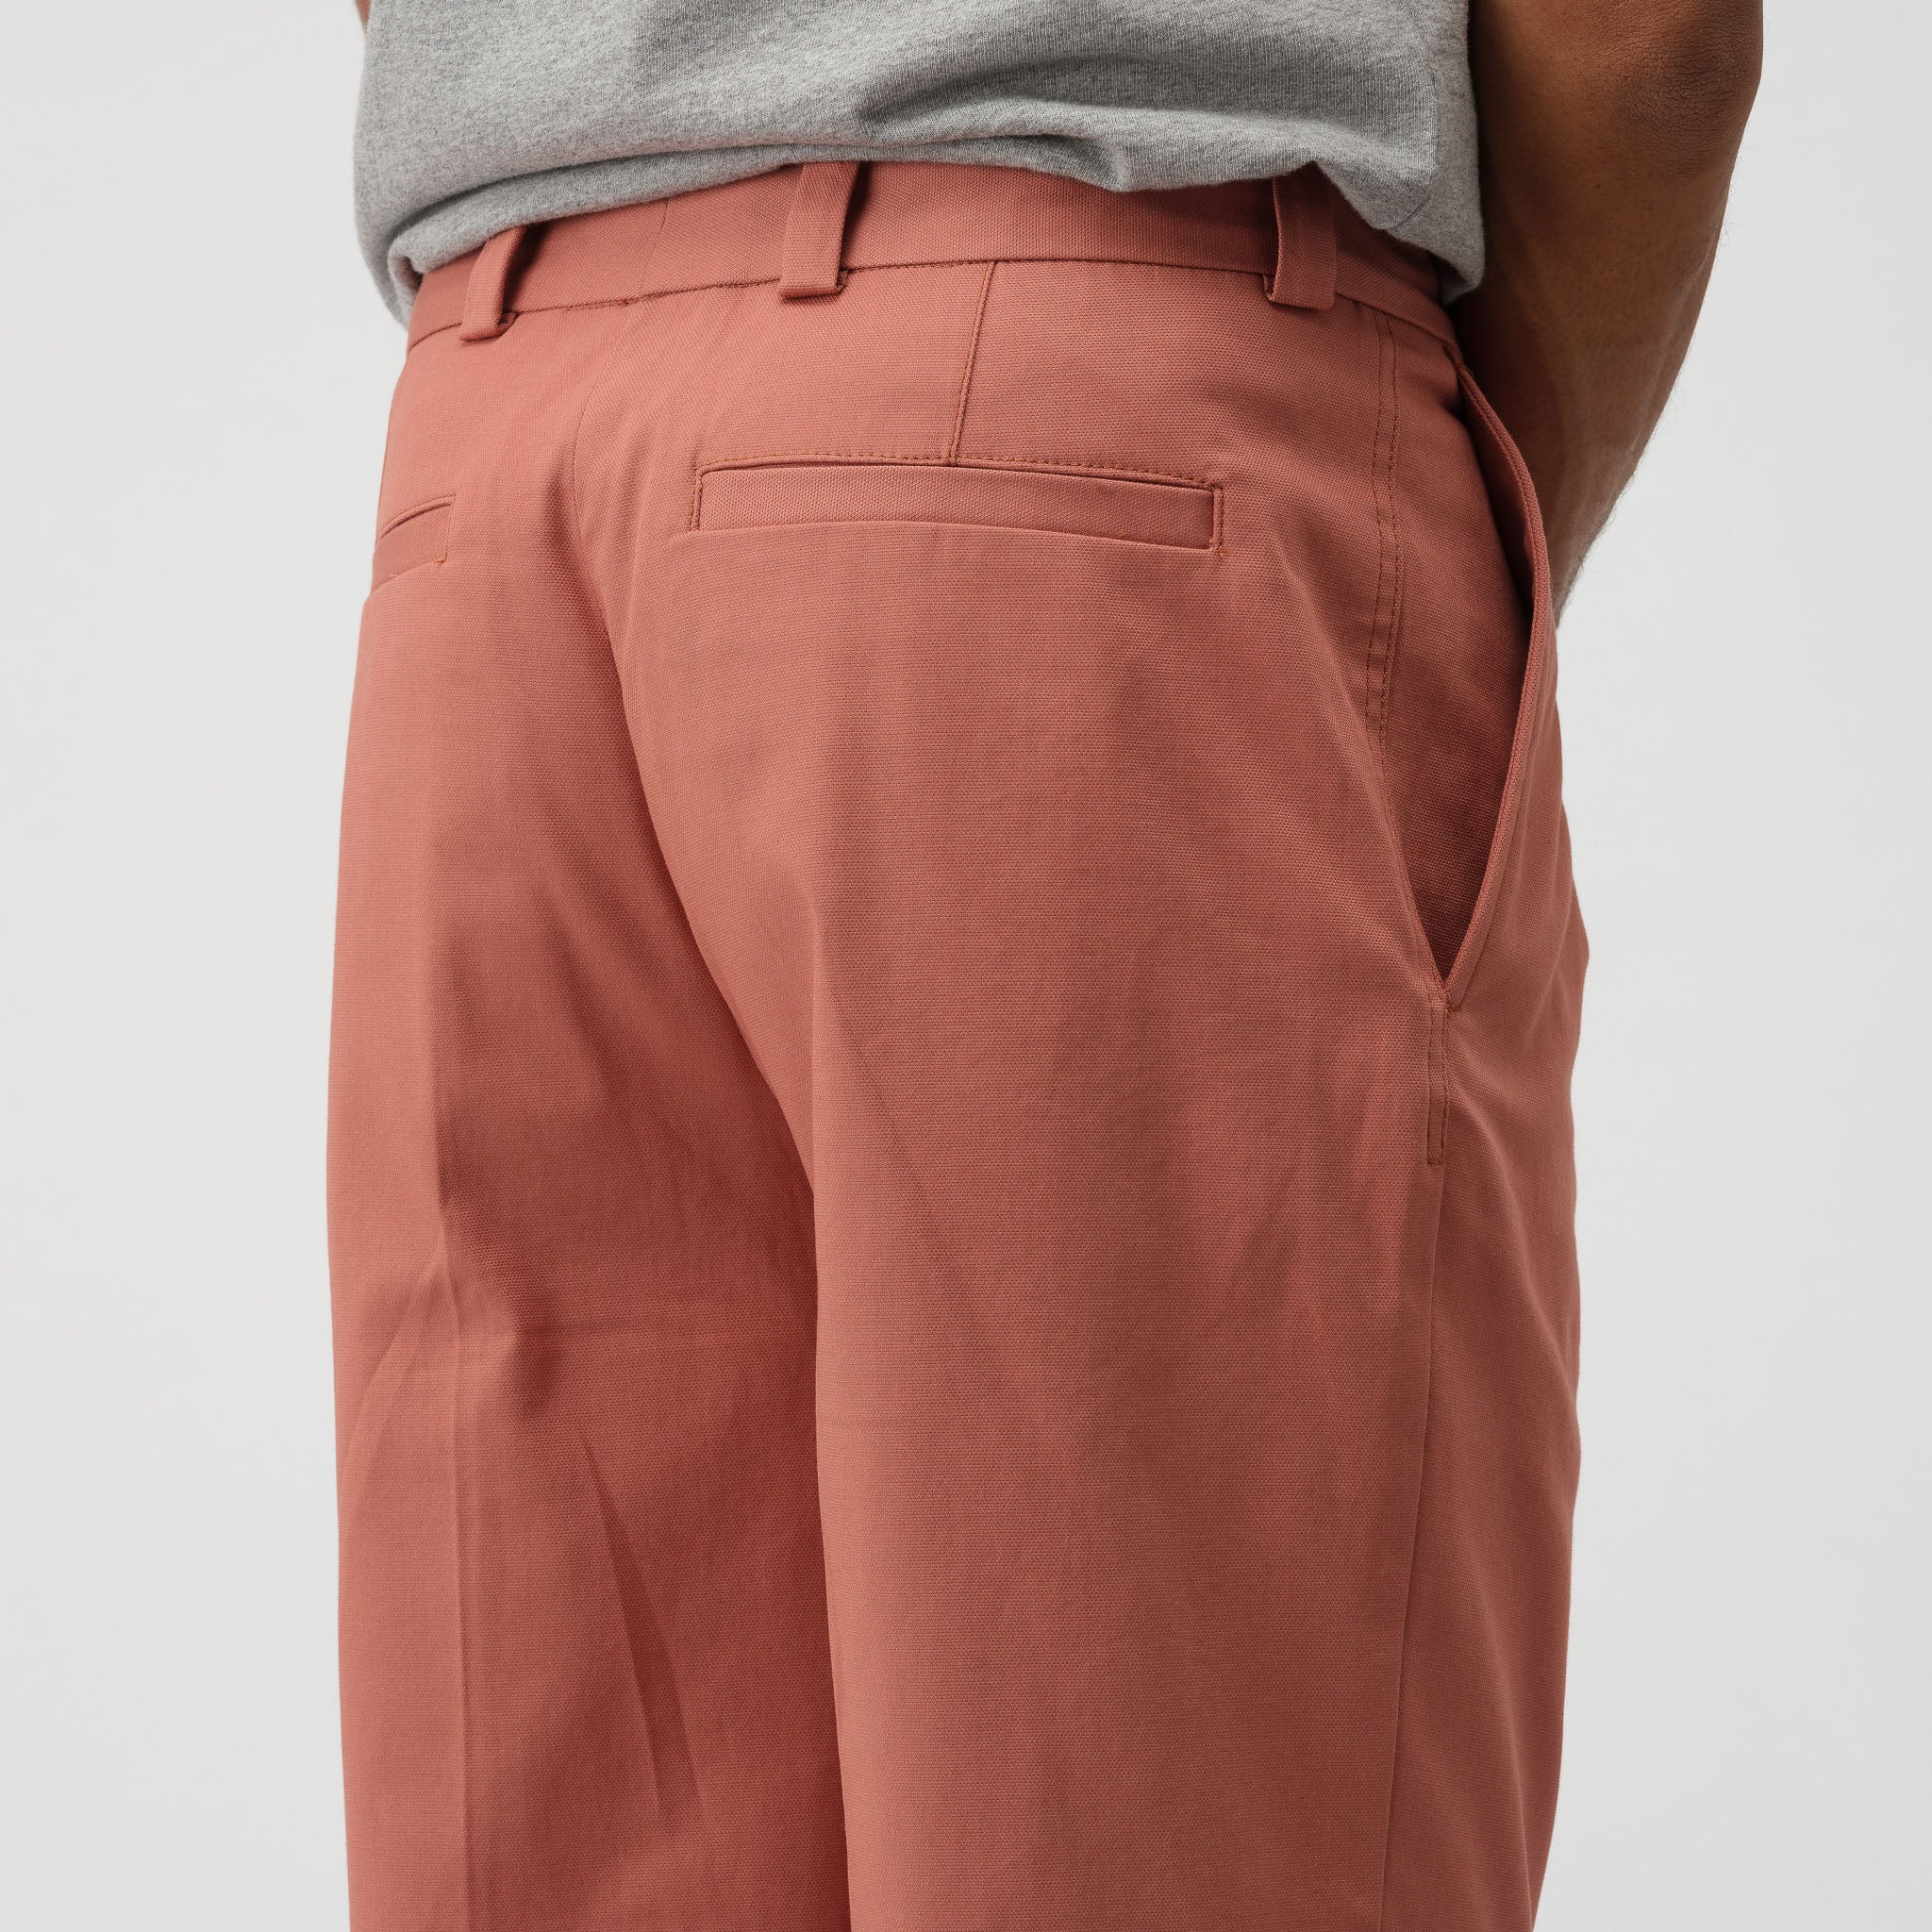 Cropped Cuffed Trouser in Ginger Orange